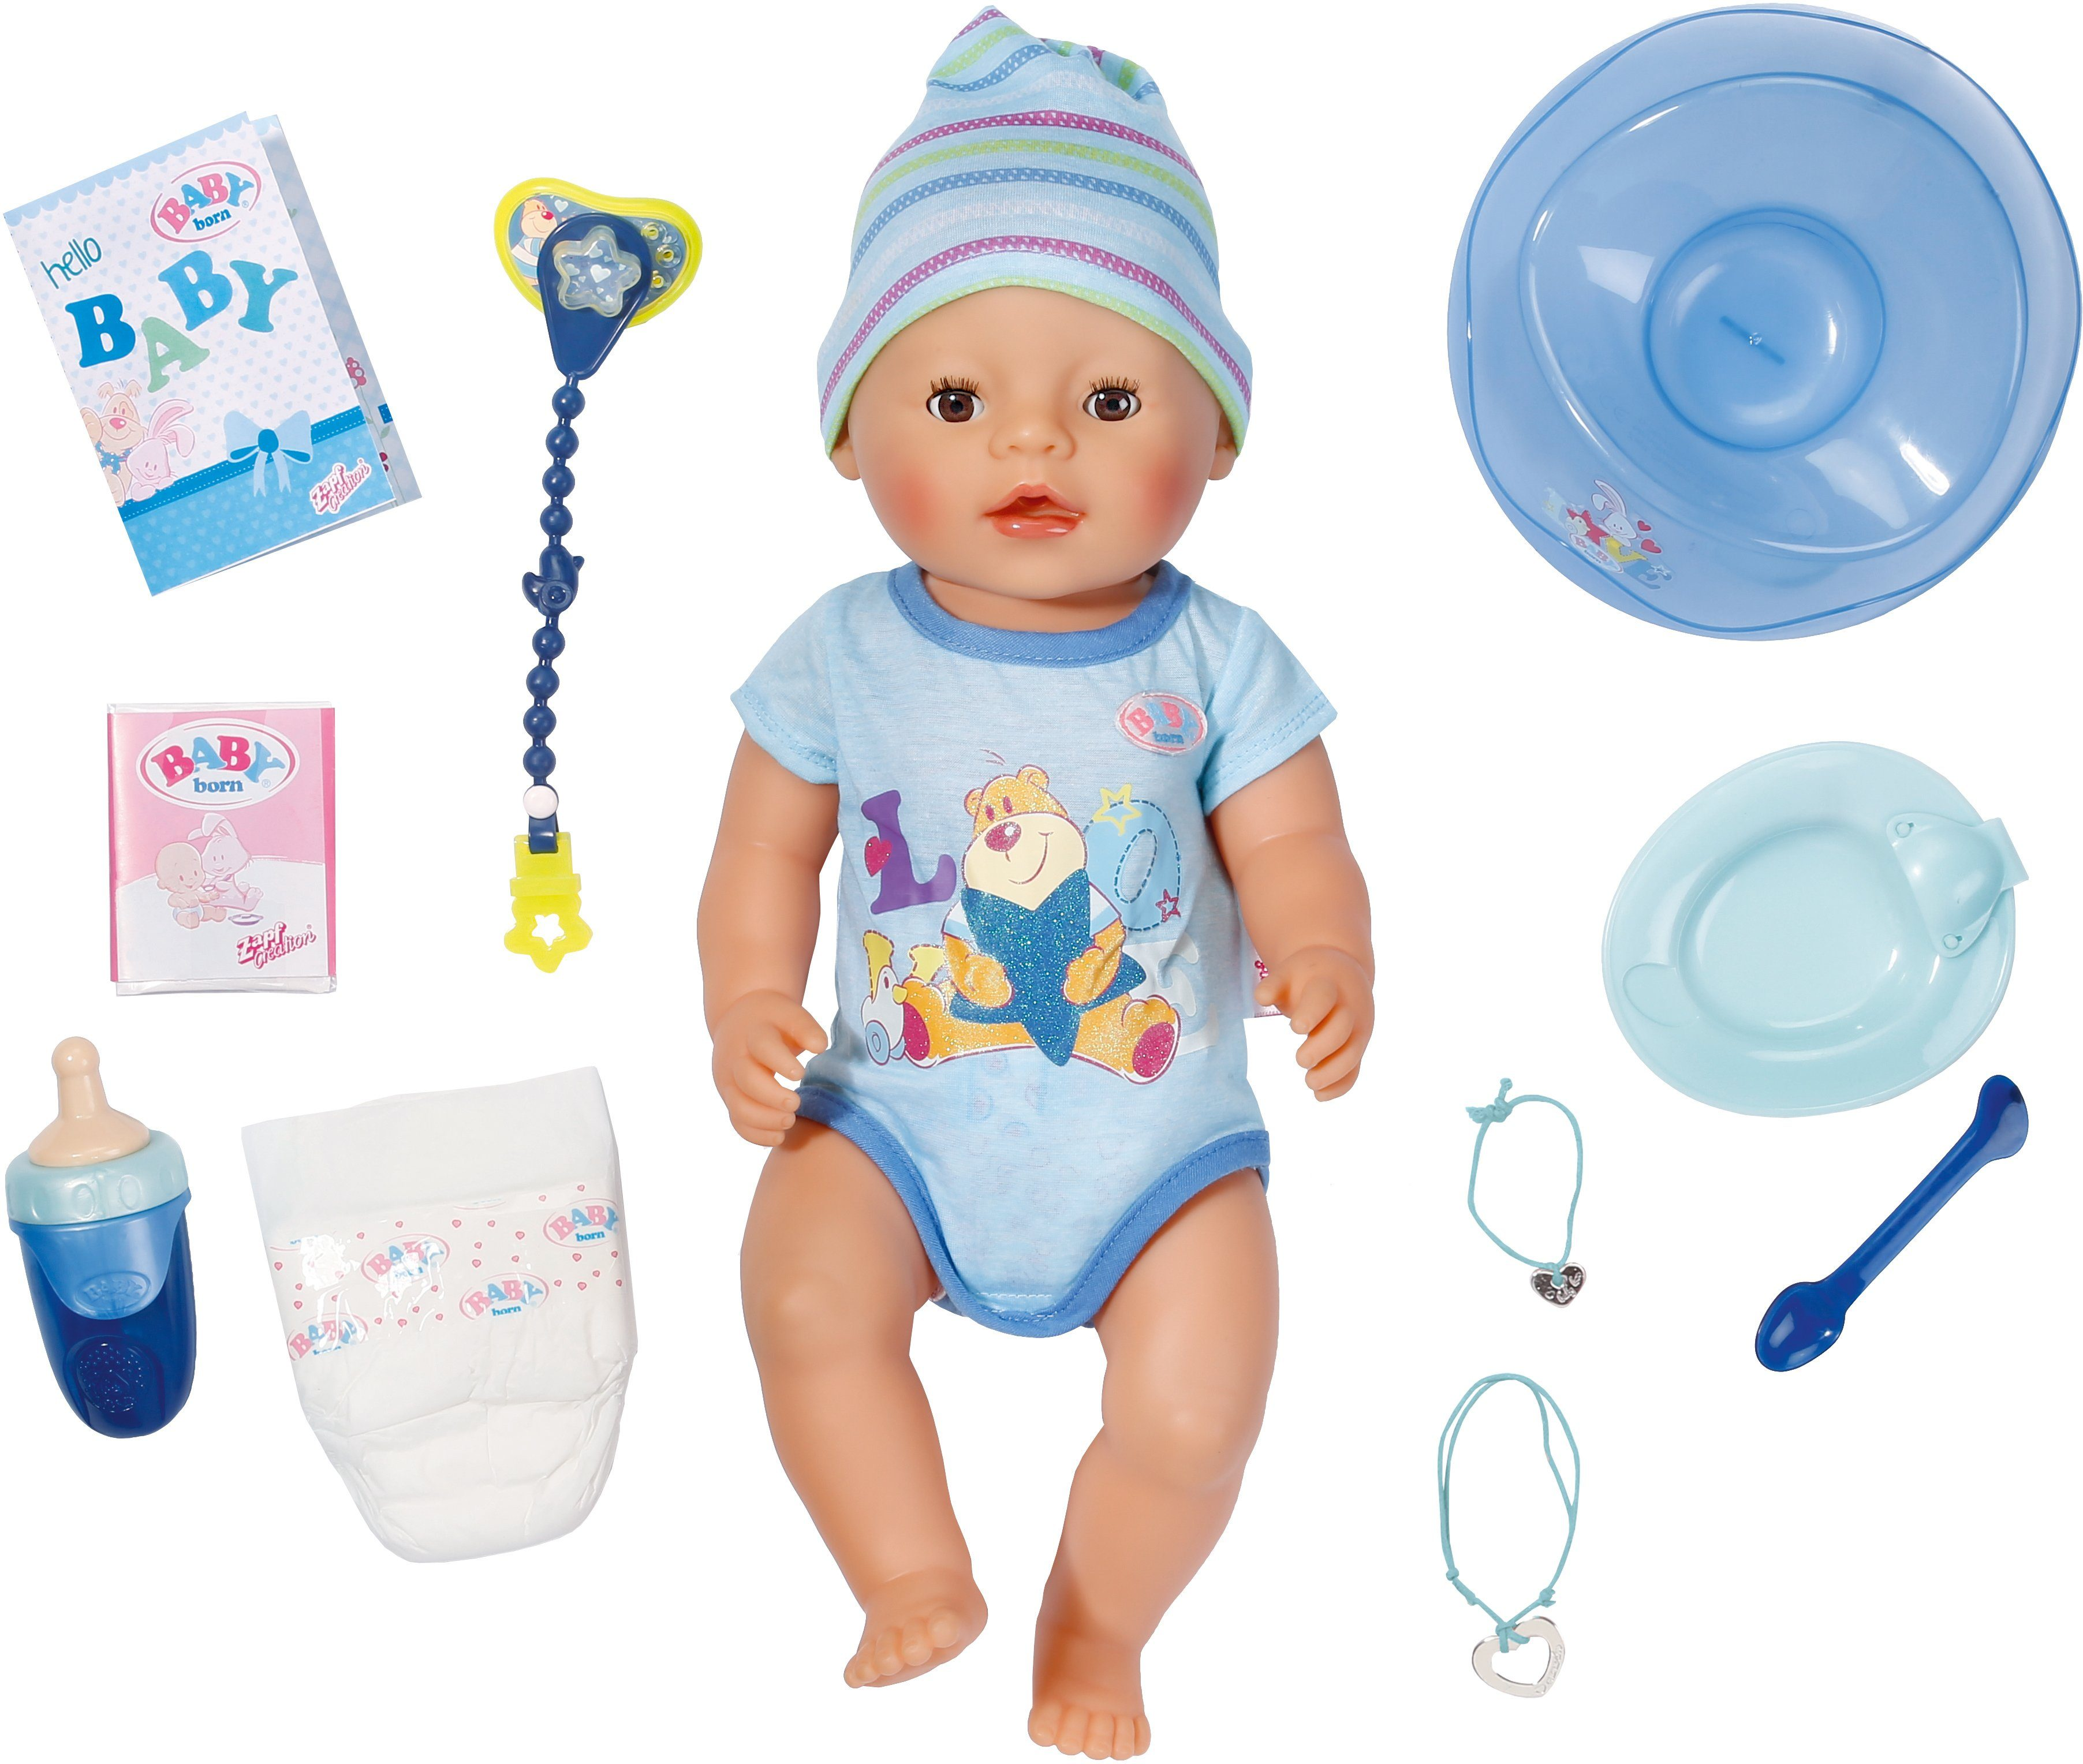 Zapf Creation Interaktive Babypuppe, »BABY born® Interactive Boy«